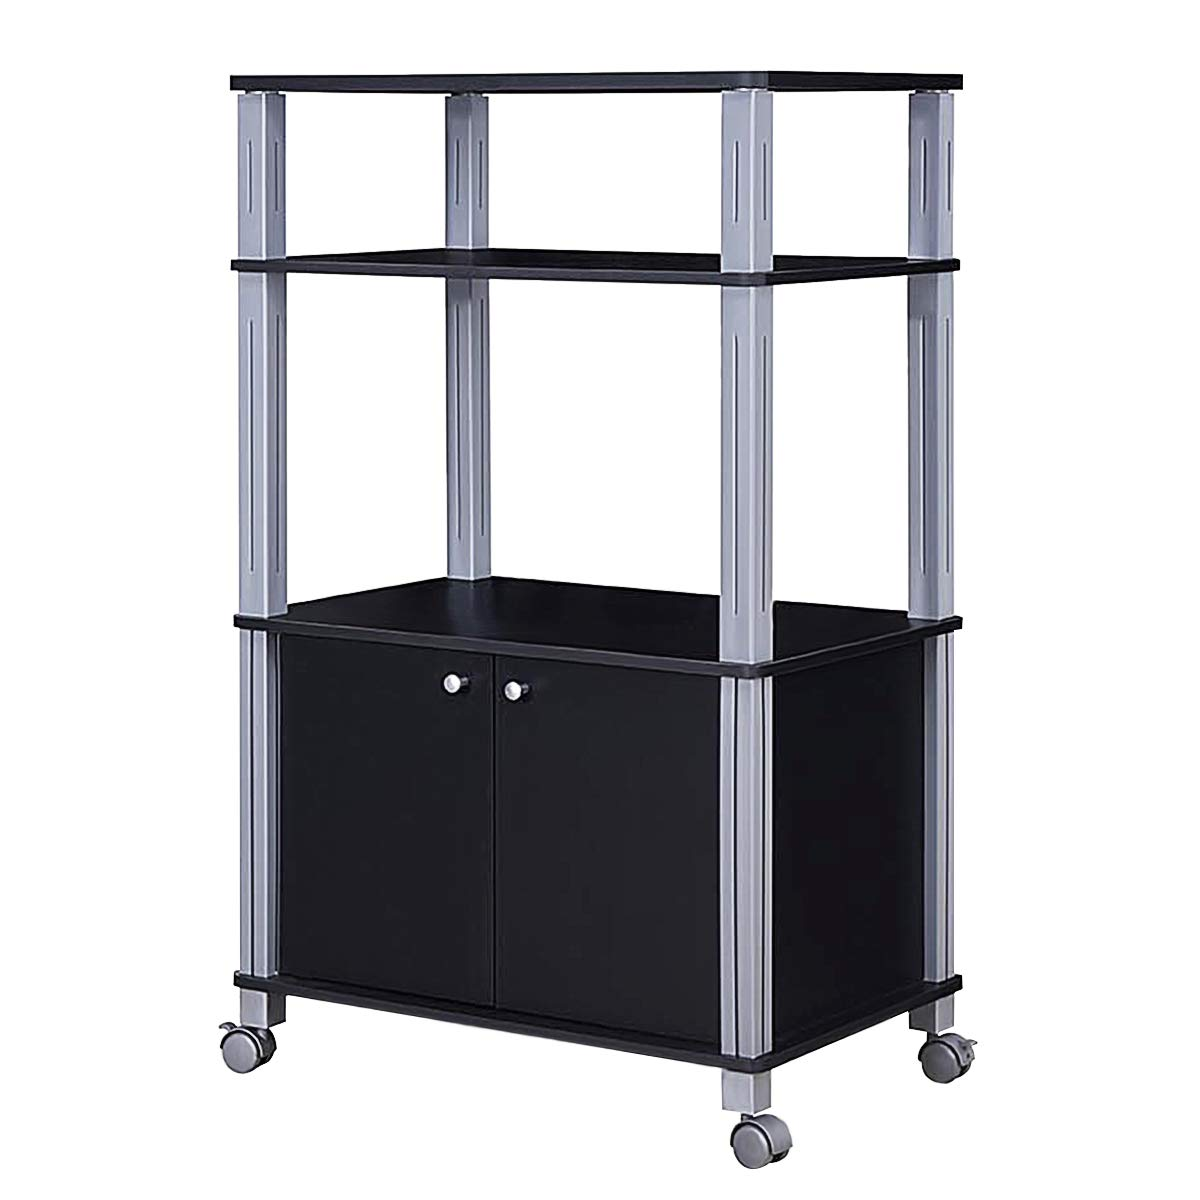 Giantex Rolling Kitchen Baker's Rack Microwave Oven Stand Utility Cart Multifunctional Display Shelf on Wheels with 2-Tier Shelf and Cabinet Spice Organizer for Kitchen Dining Room Furniture (Black) by Giantex (Image #8)